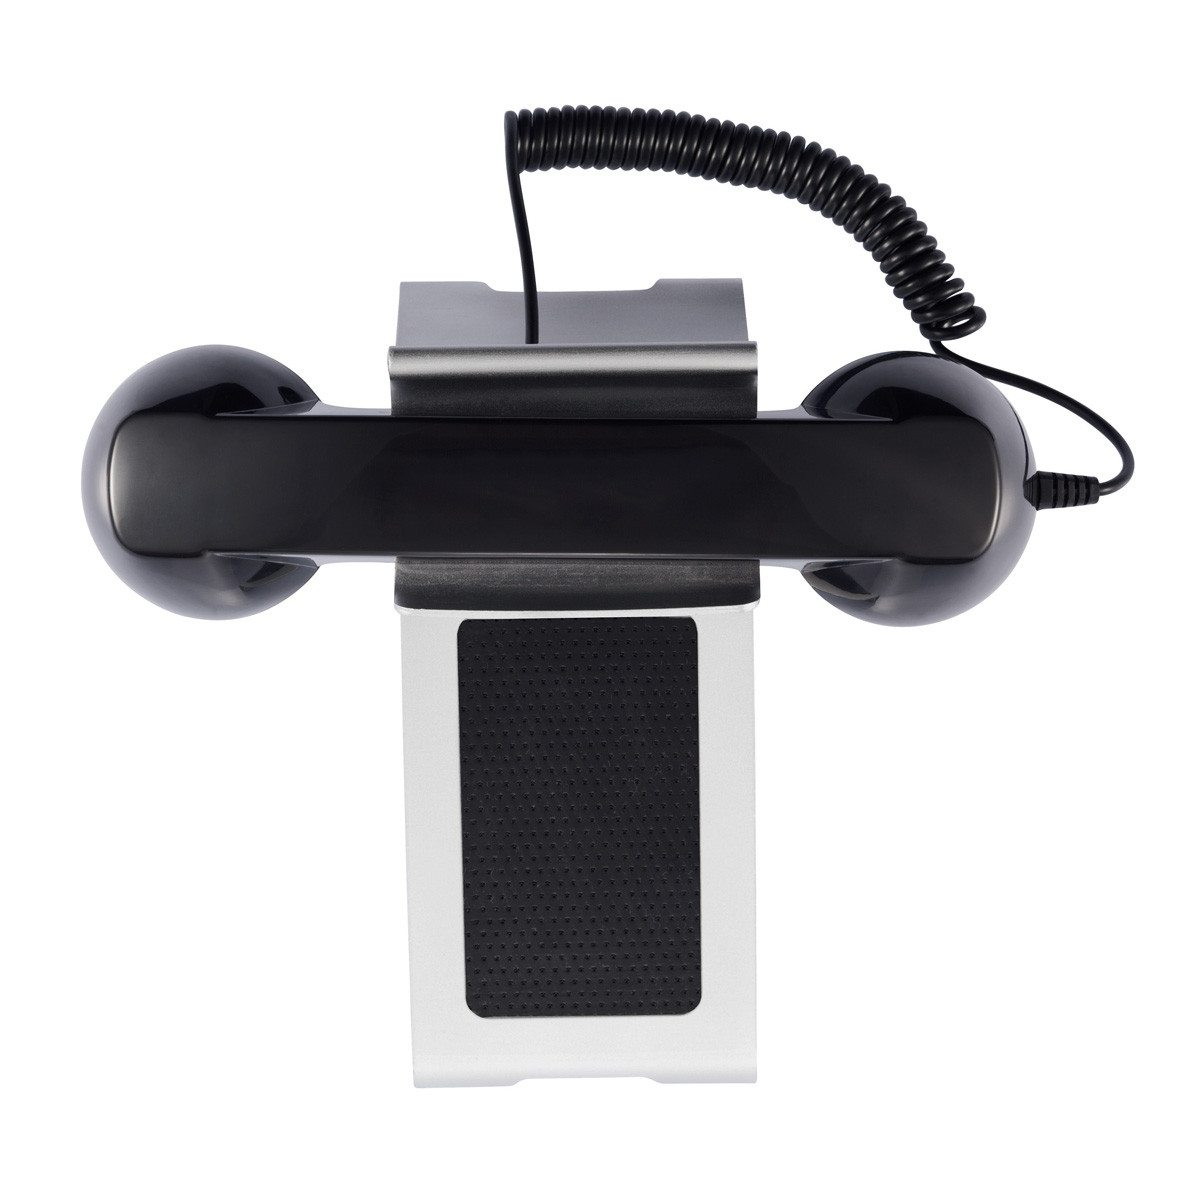 Phone Dock - Die telefon Dockingstation